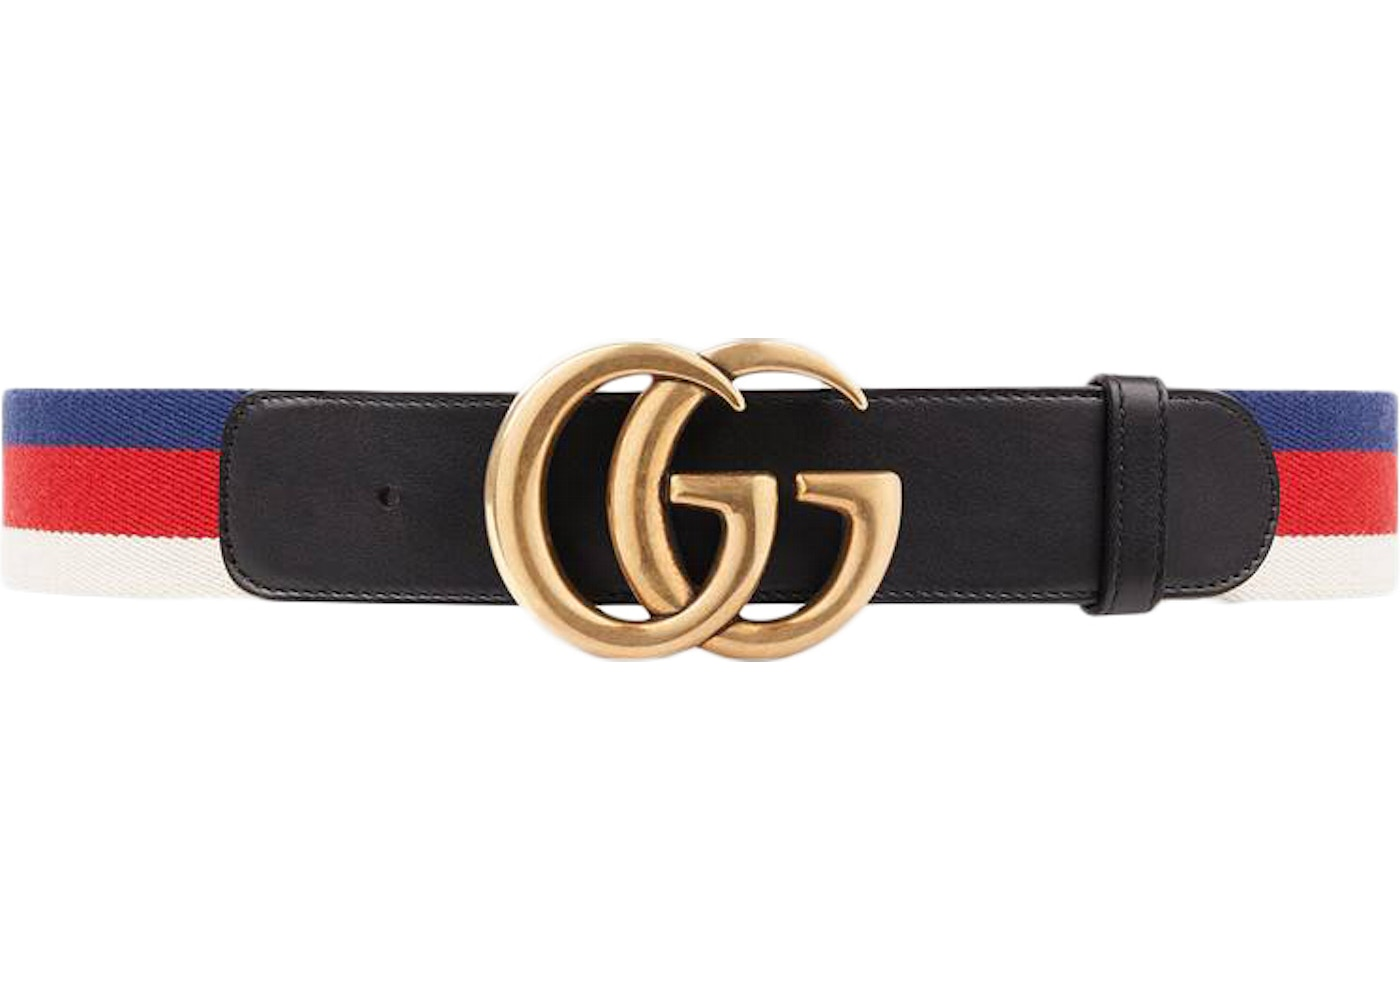 f78651a67fe Gucci Sylvie Web Belt Double G Buckle Red White Blue Black